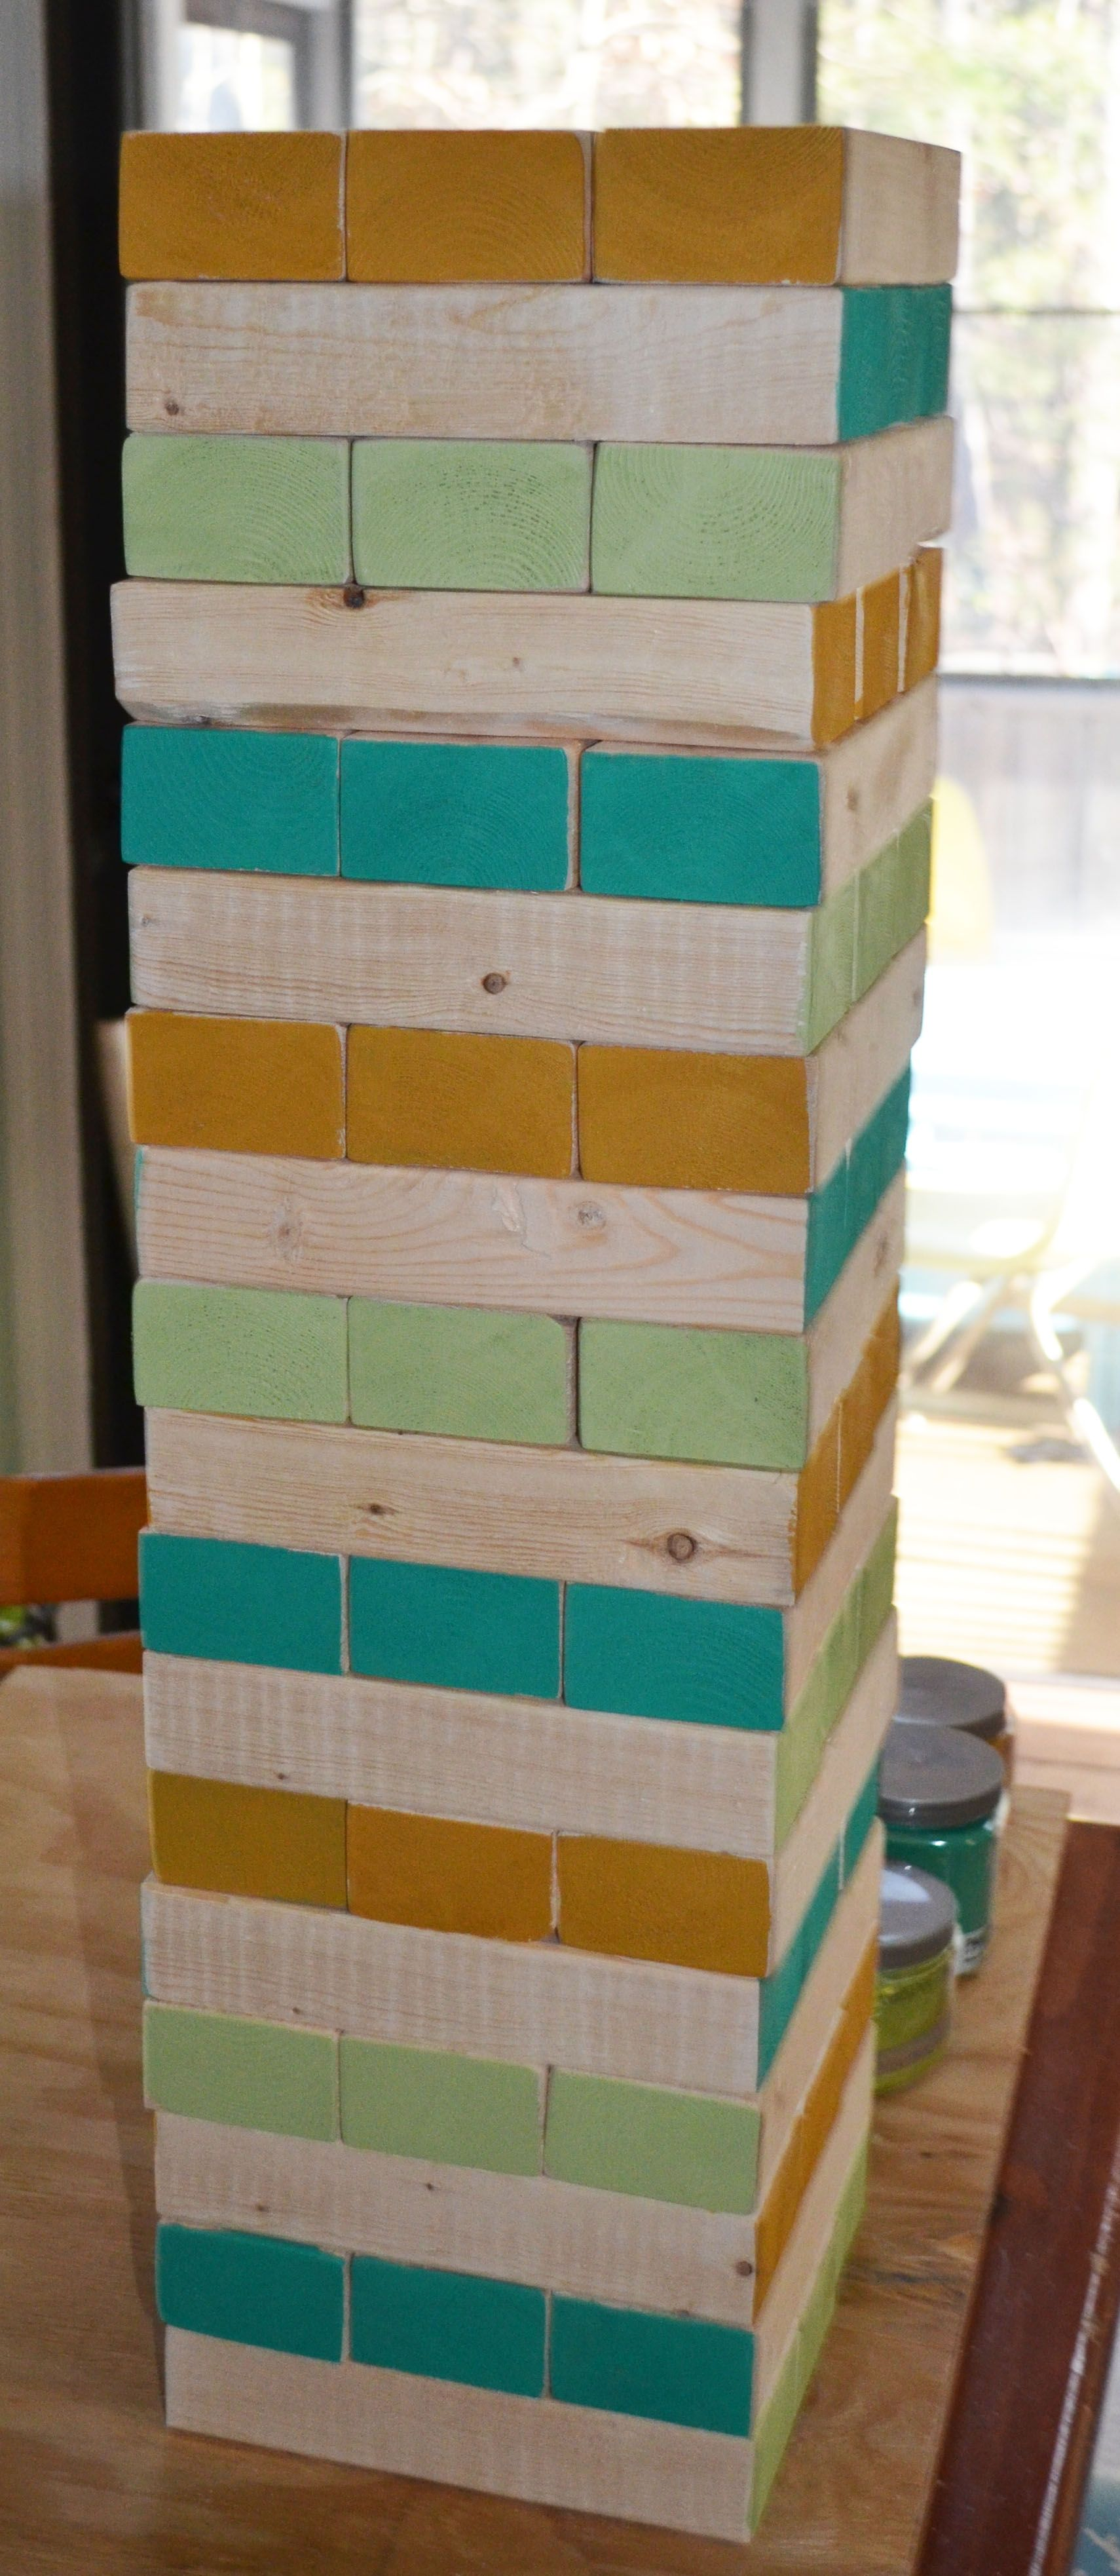 Giant jenga everyone is getting this for christmas this year need an easy do it yourself christmas gift why not make a giant jenga set its quick and easy and a lot of fun to play in the backyard solutioingenieria Image collections